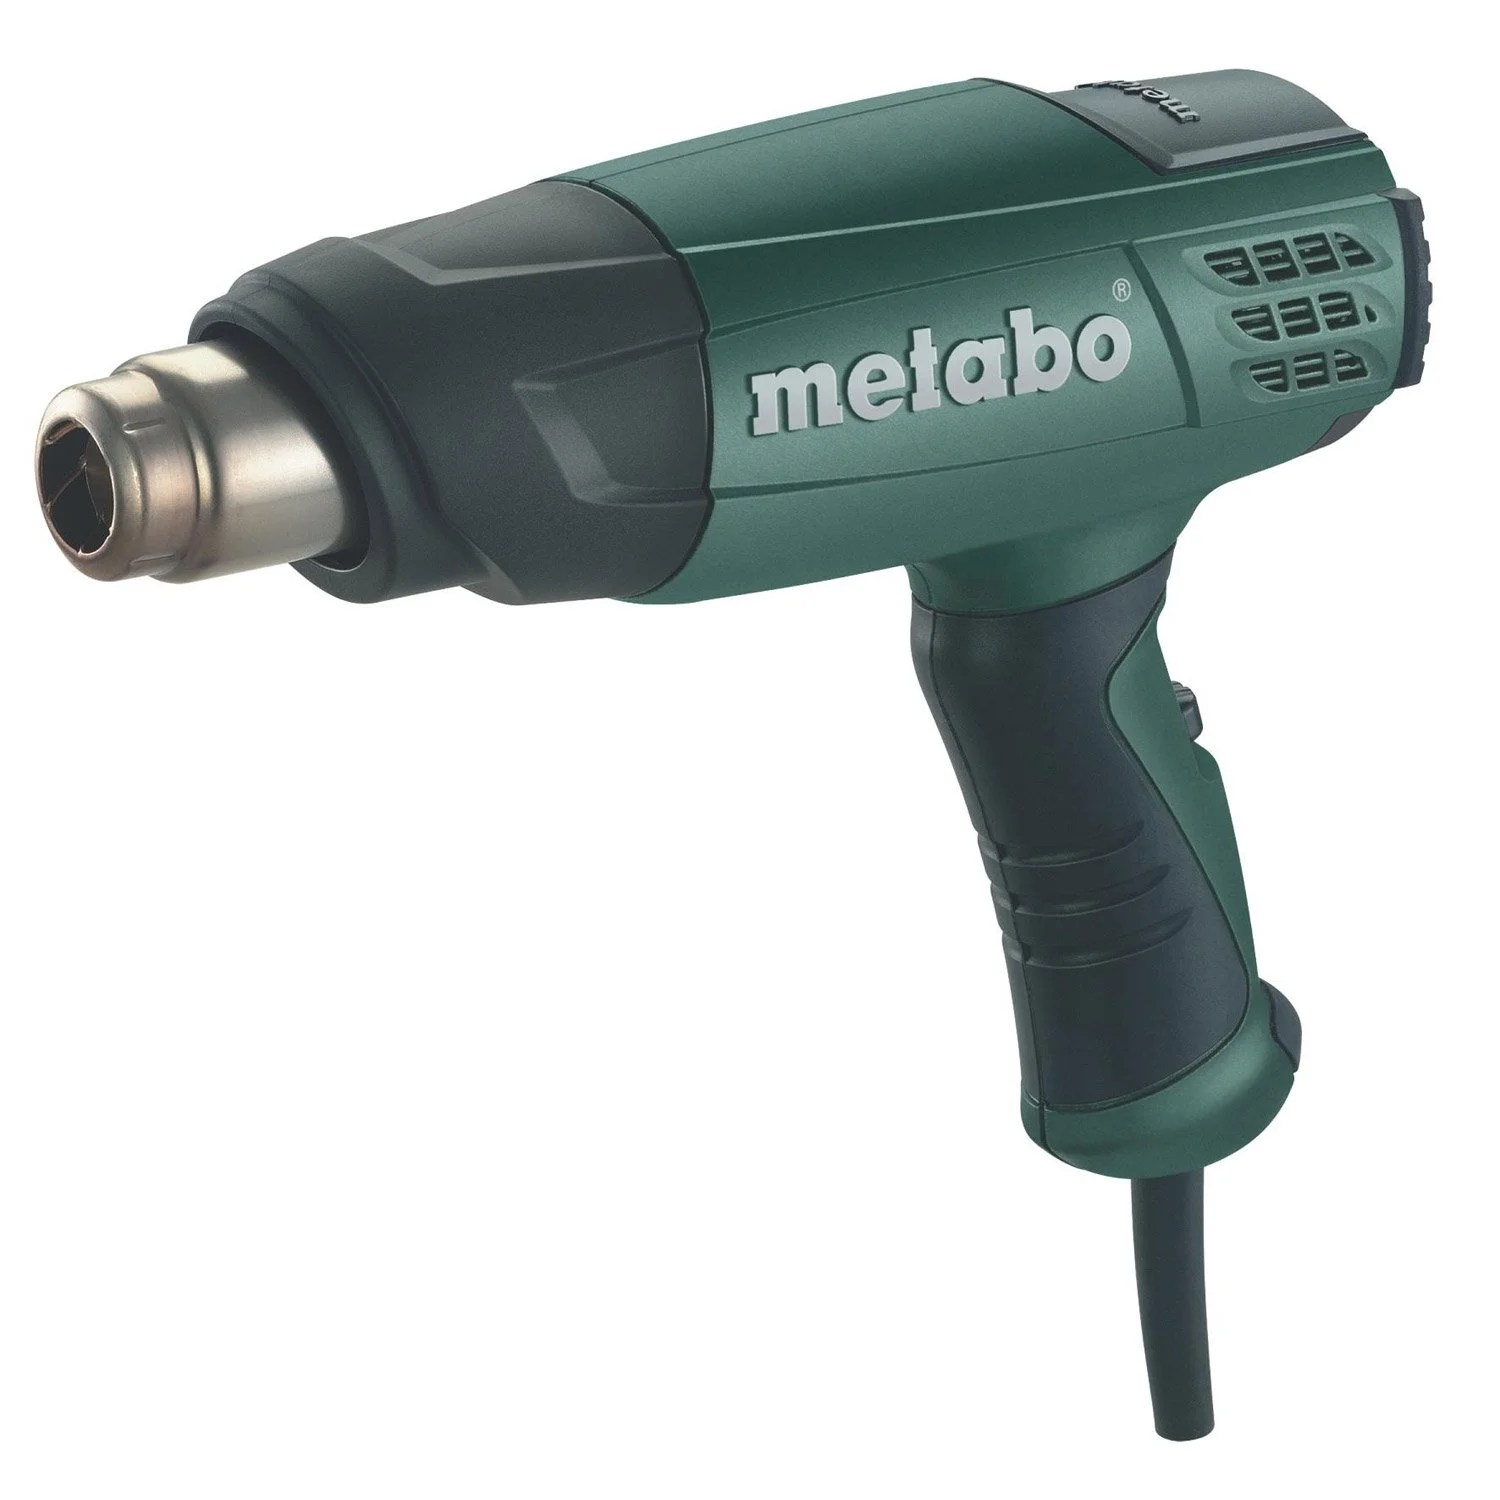 Metabo Leroy Merlin Décapeur Thermique Metabo He 20 600 2000 W Leroy Merlin